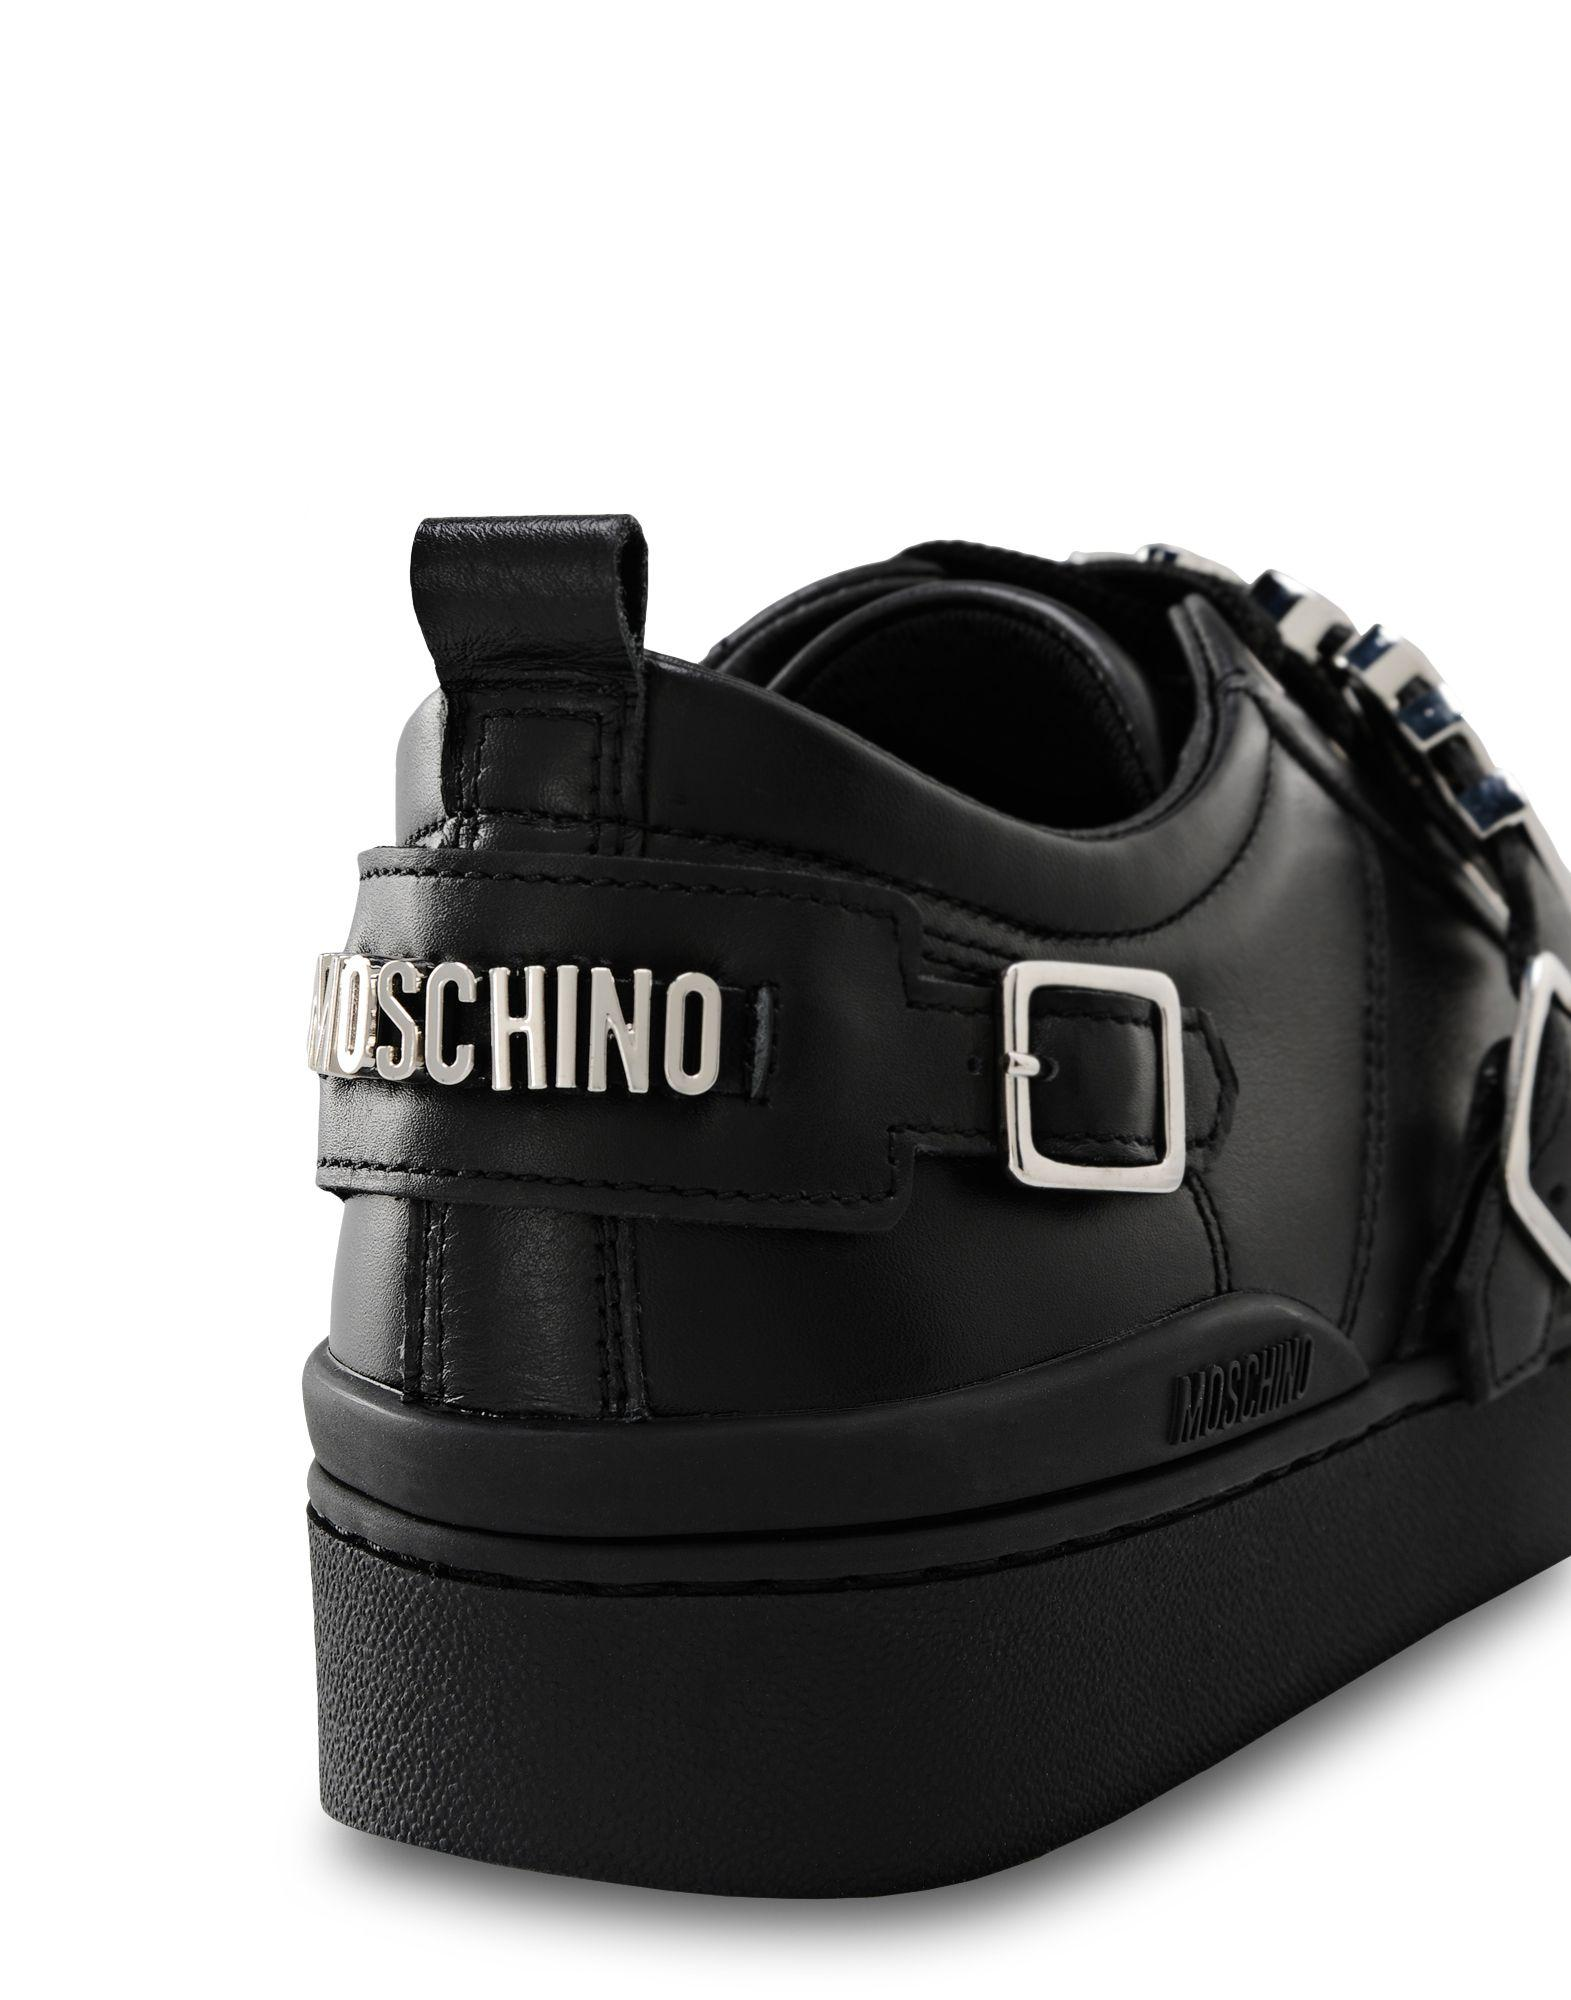 Moschino Leather Sneakers in Black